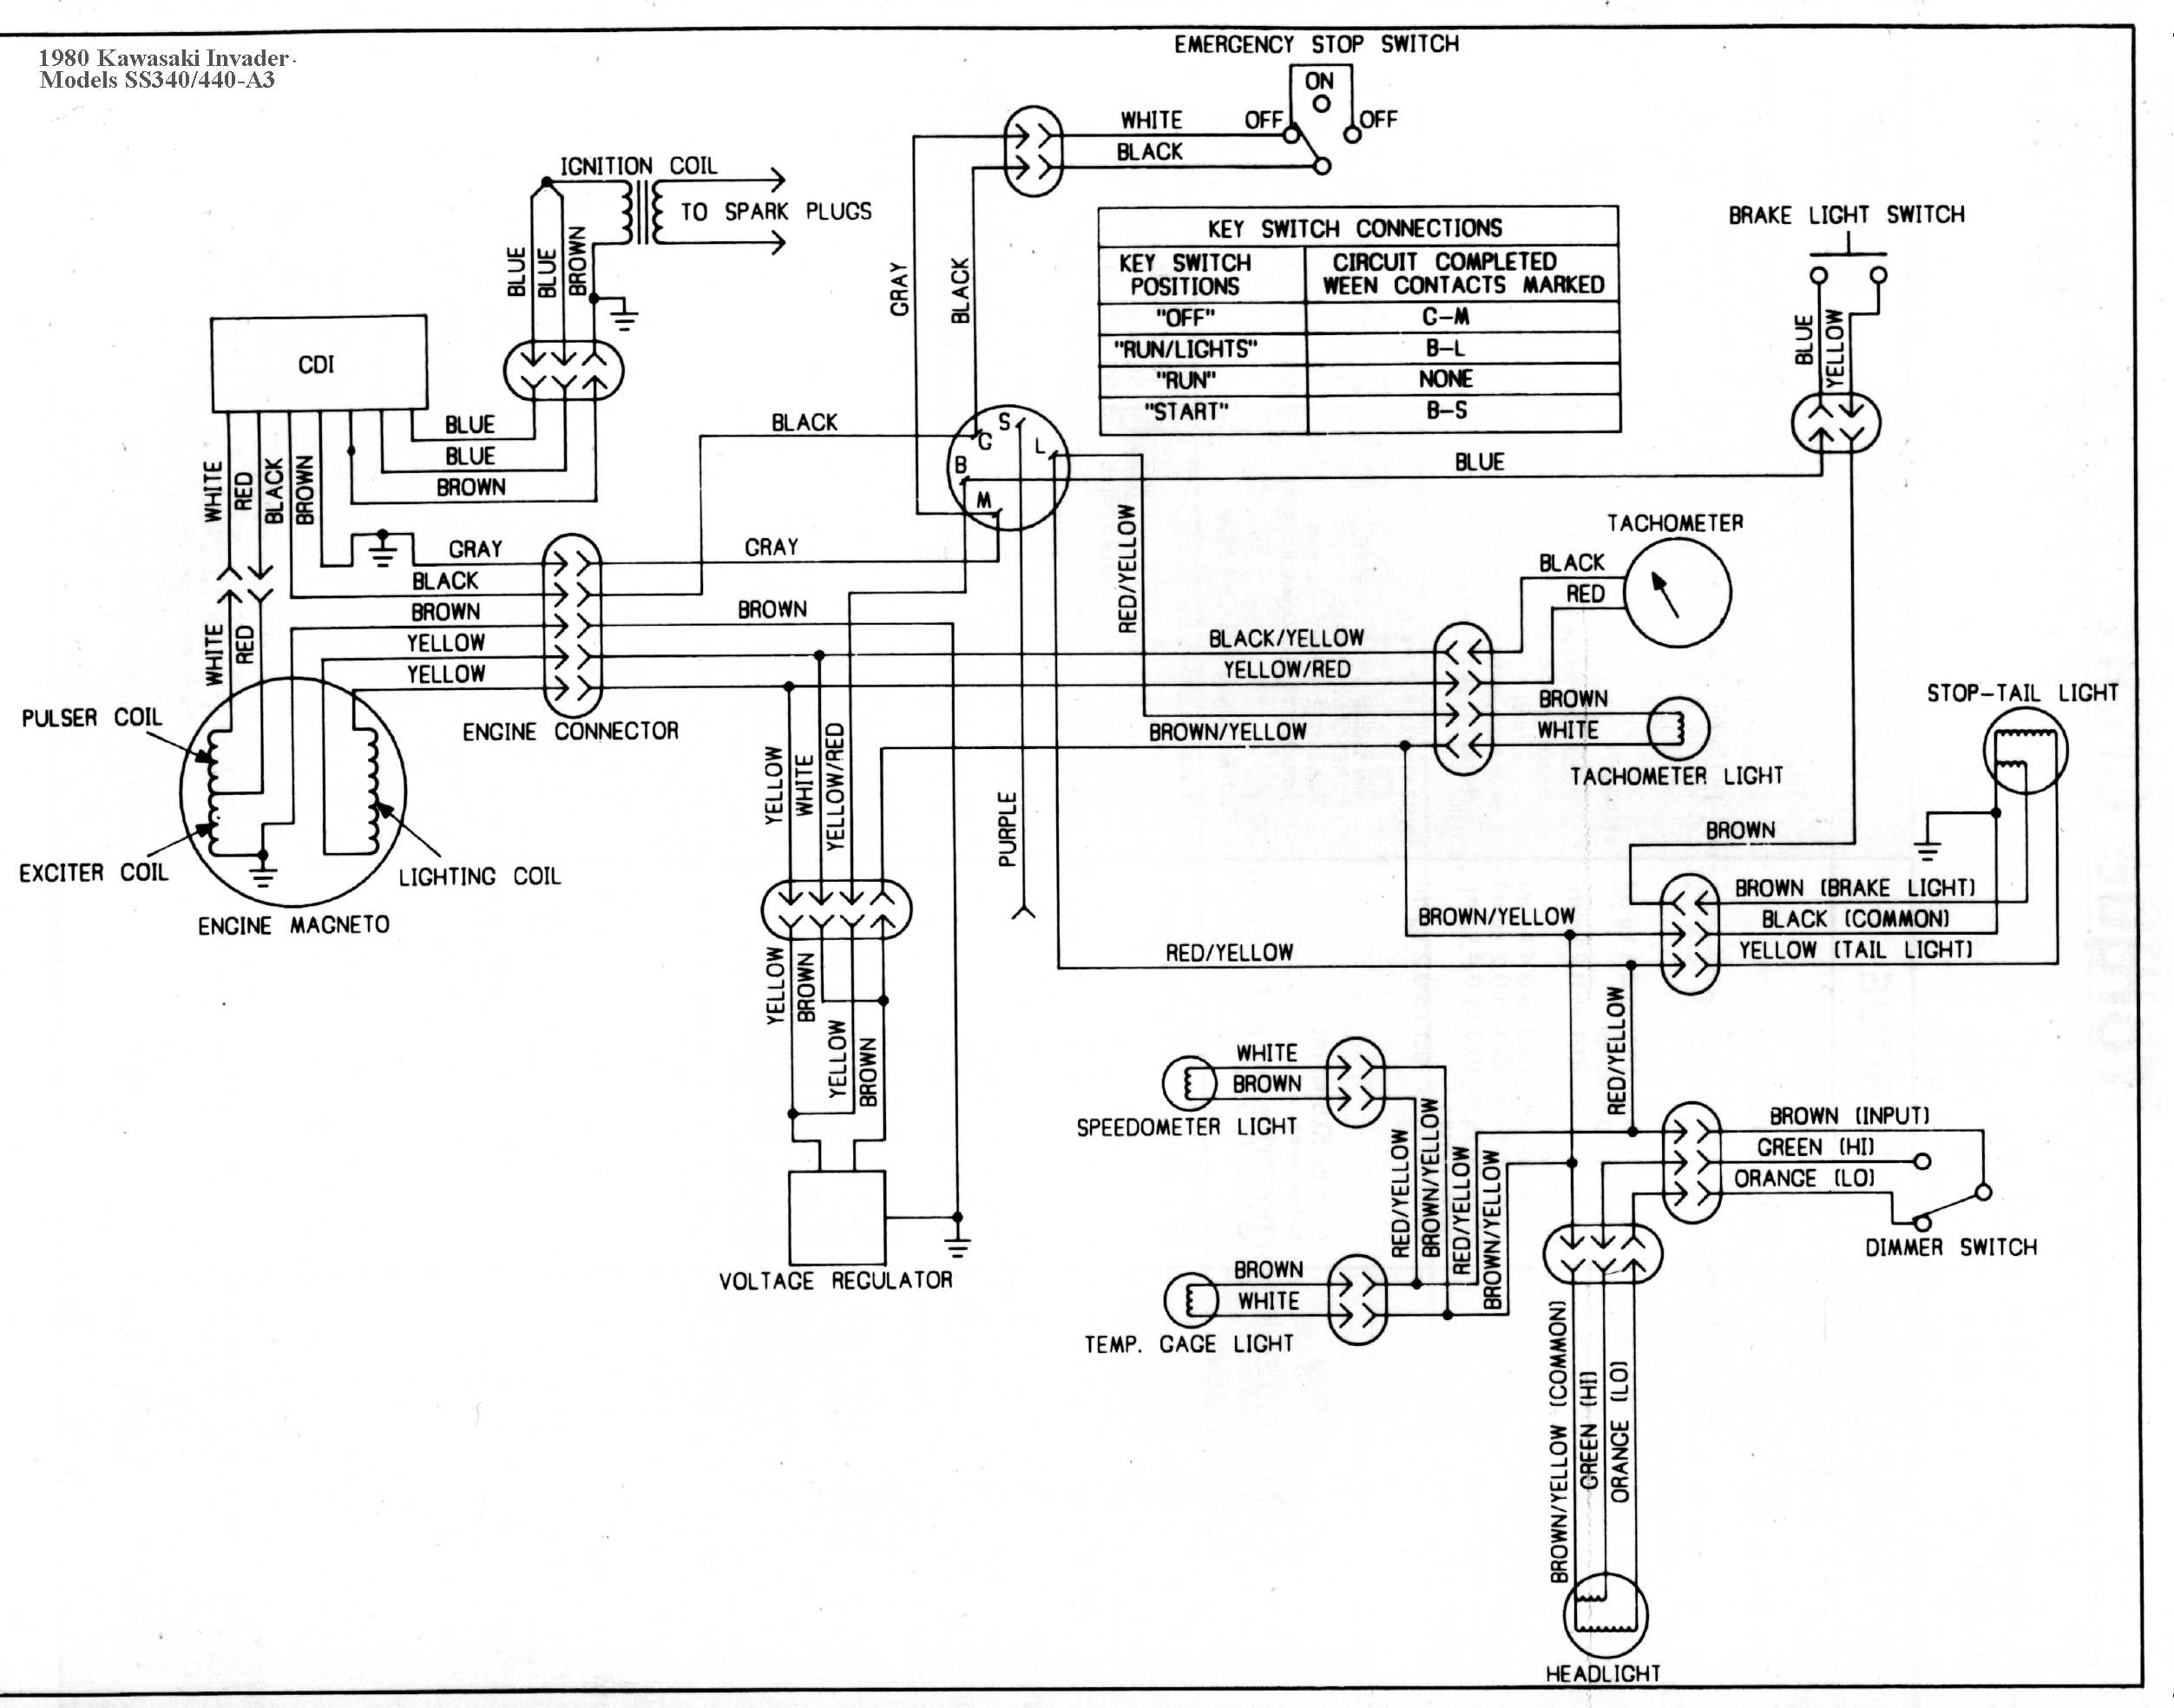 1980 yamaha exciter 440 wiring diagram